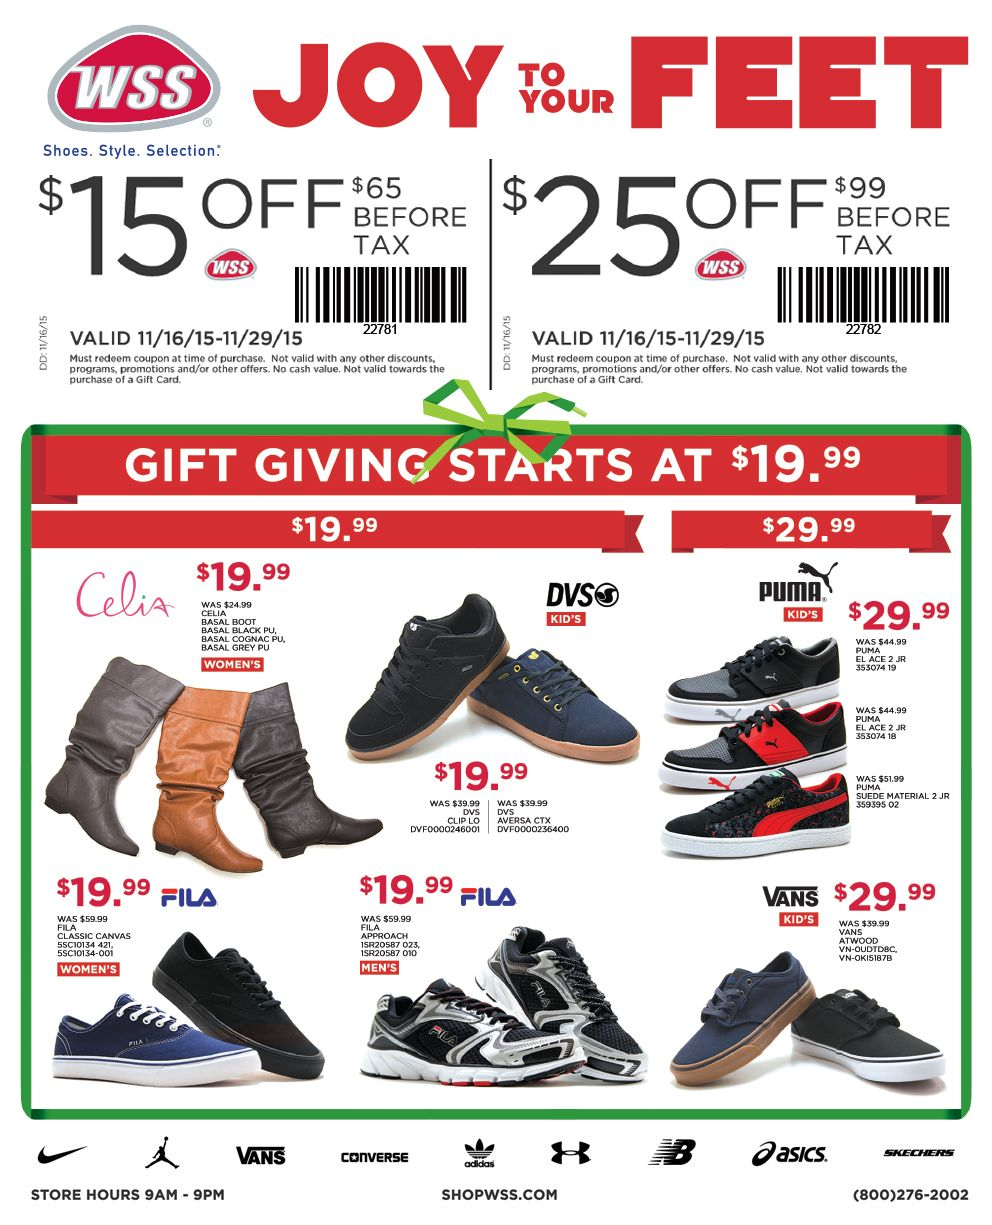 WSS Coupons, Official Site Shoes, Clothes & Athletic Gear